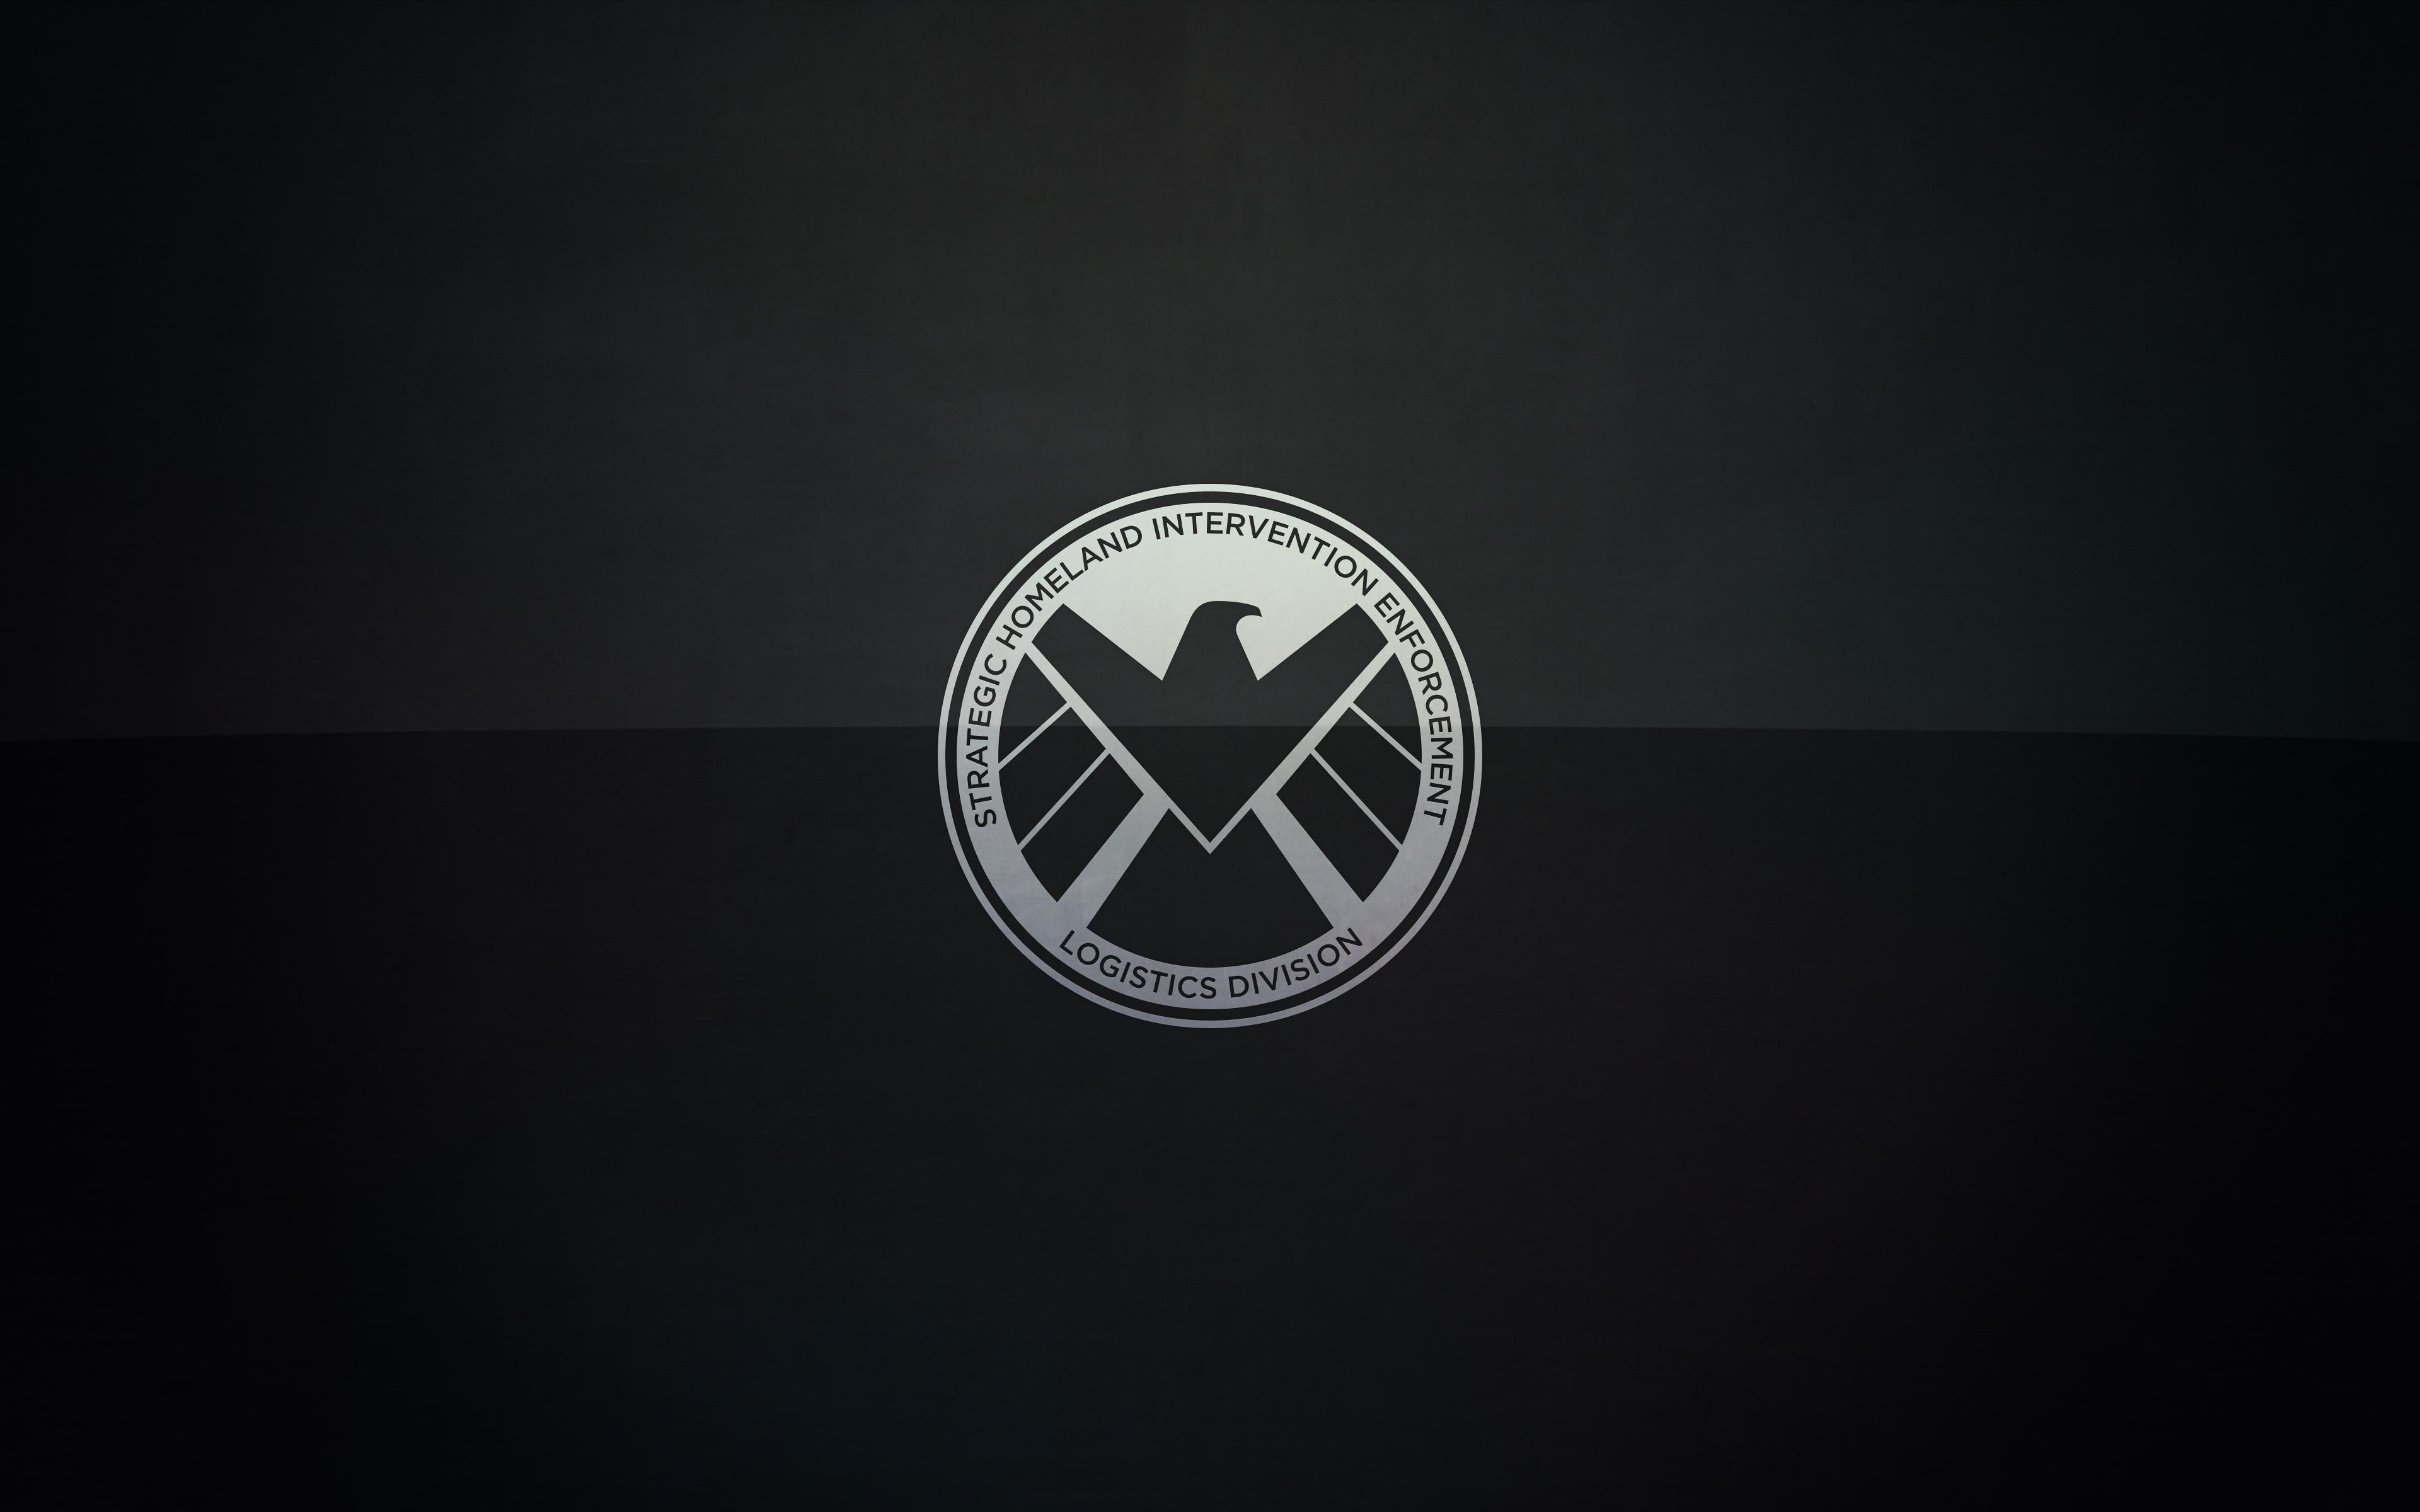 Marvel's Agents of S.H.I.E.L.D. Logo Wallpaper Wide or HD